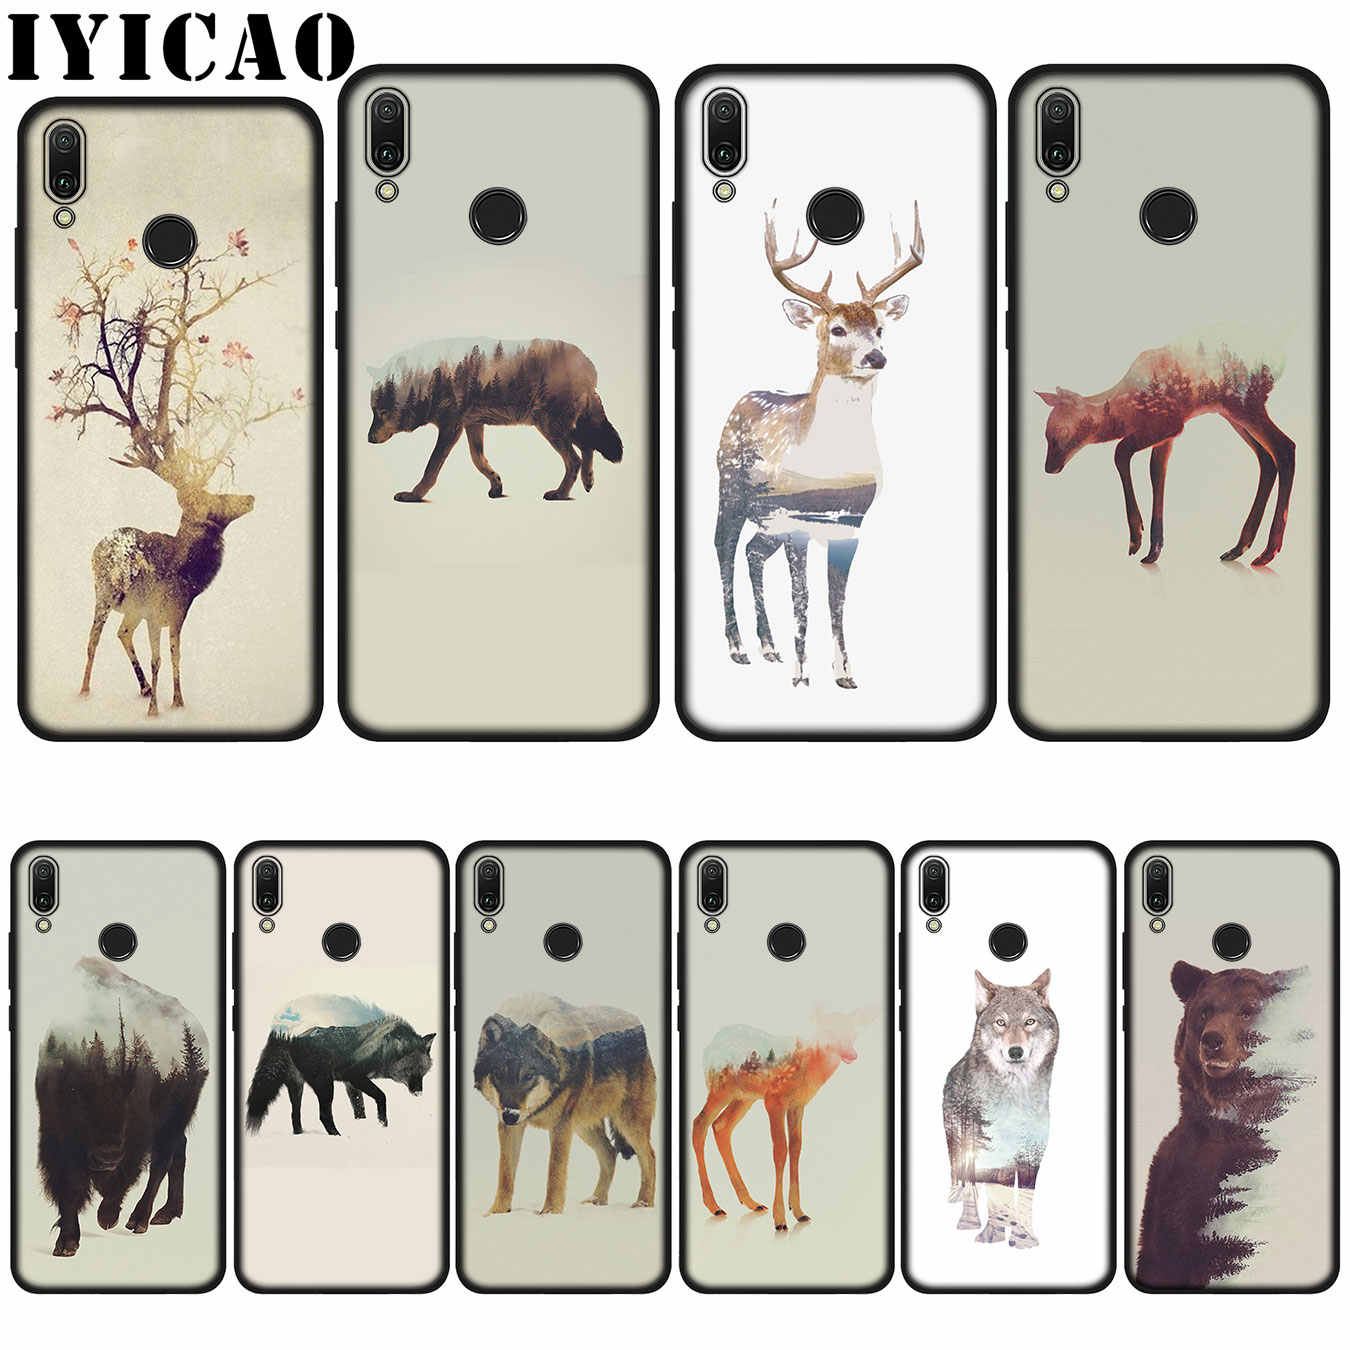 IYICAO Animal Double Exposure Wolf Bear Deer Wild Boar Soft Case for Huawei P20 Pro P10 P8 P9 P30 Lite Mini 2017 P Smart 2019